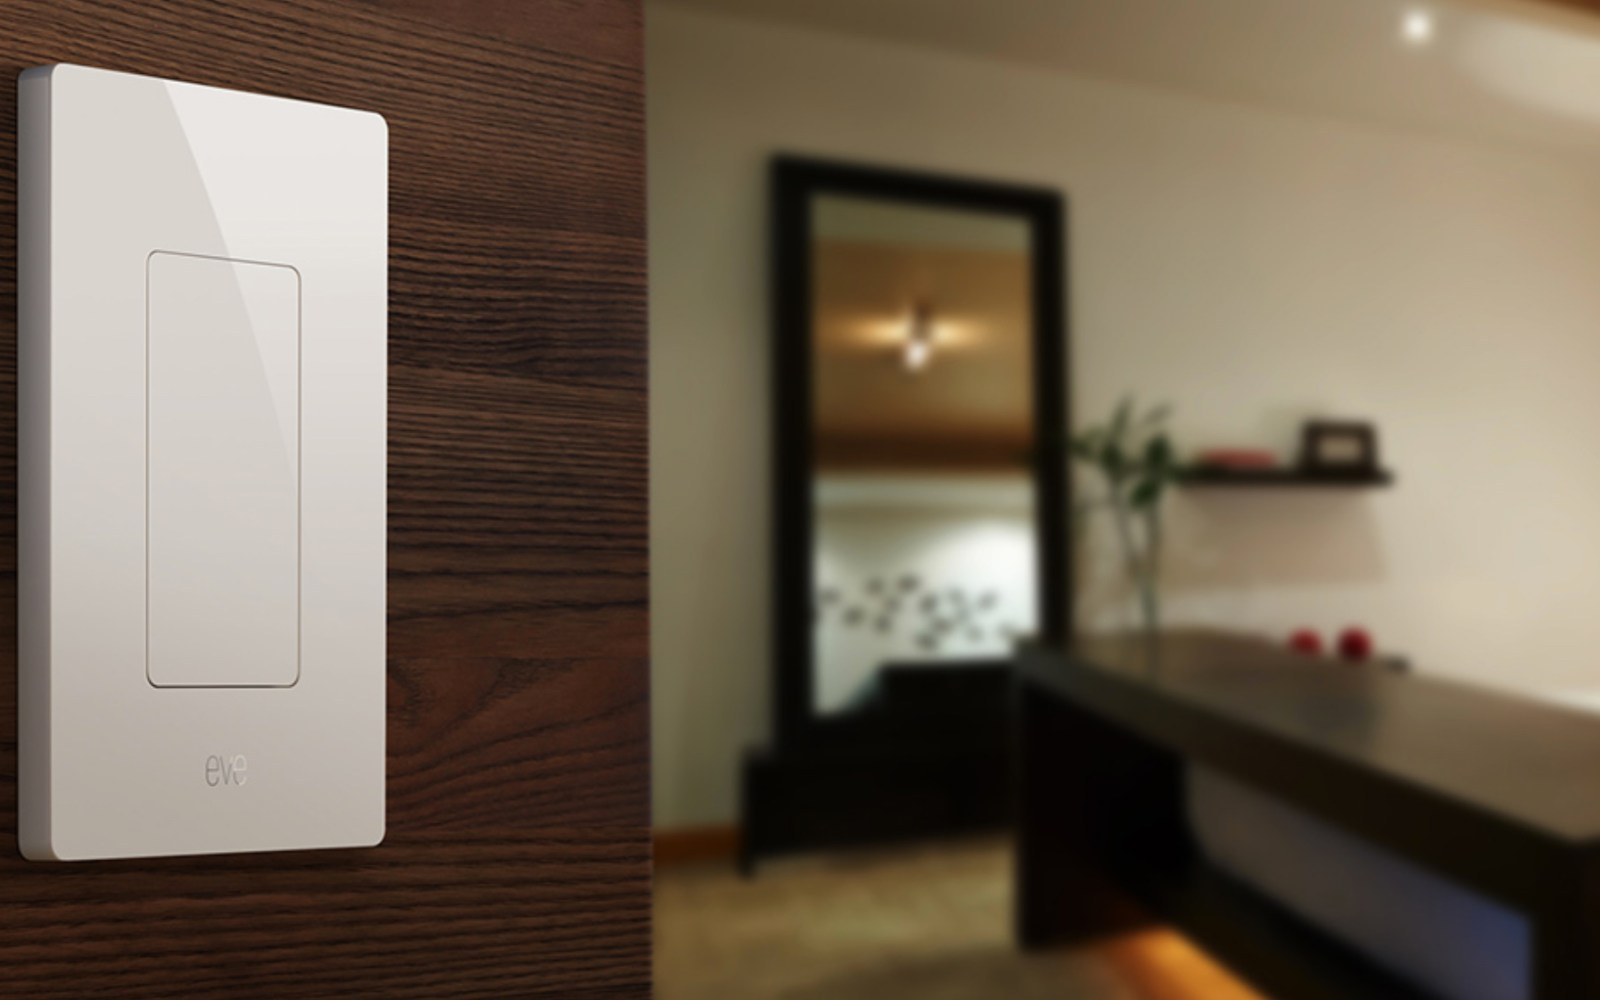 New $49 Elgato Eve Light Switch adds smart HomeKit features to your house's existing lighting, no bridge/hub required (update: Eve Motion available too)